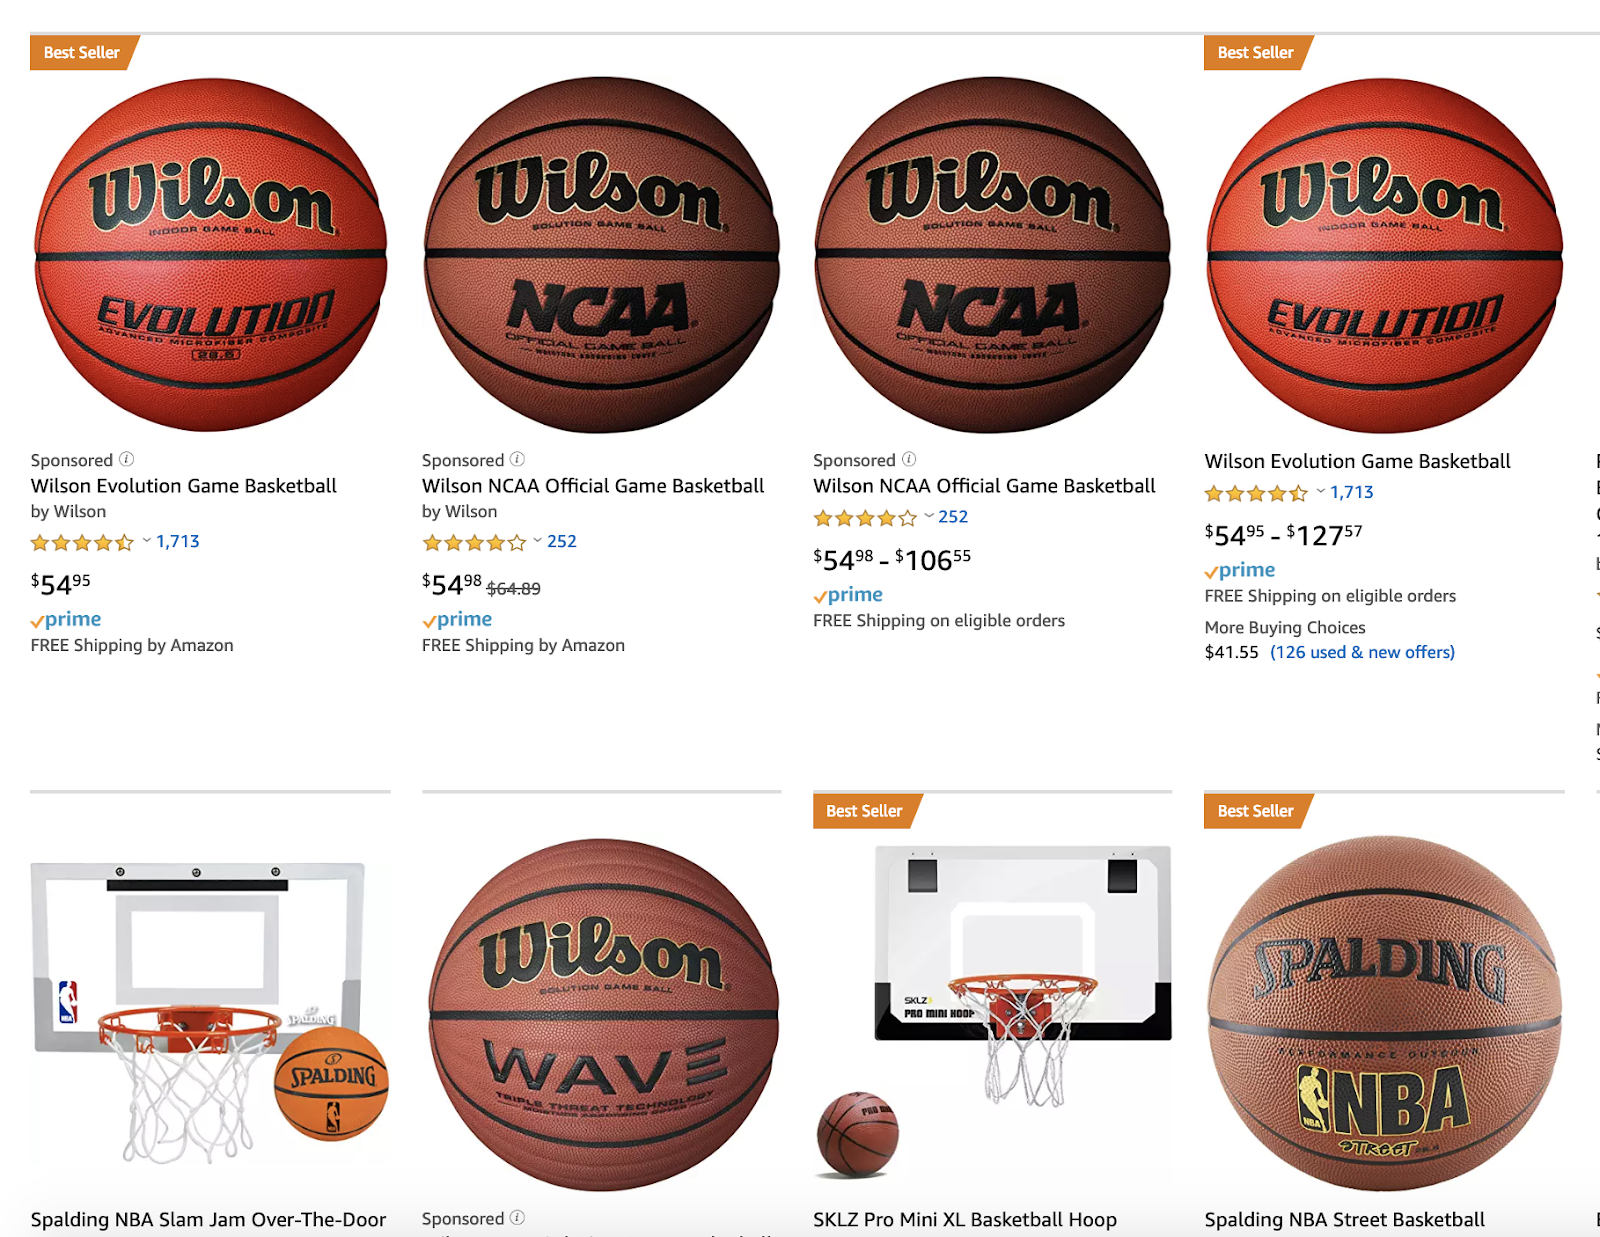 5 Ways to Figure Out What to Sell on Amazon